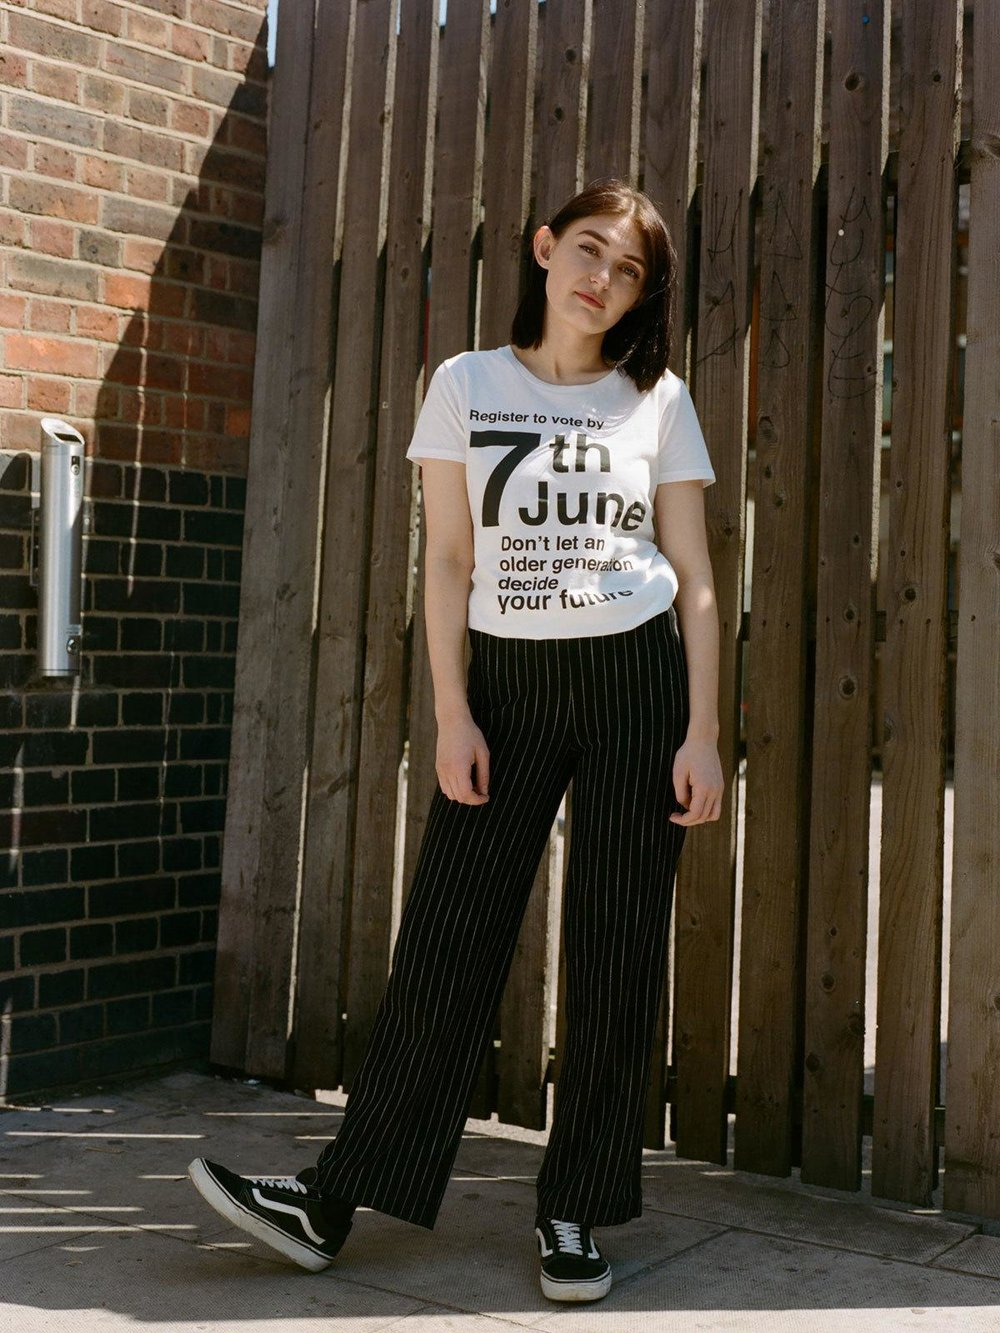 MEET: TORI WEST    Founder of  BRICKS Magazine  turned zine publisher, Tori creates a super stylish platform for fashion, art and music. Balancing the demands of 'real life' and continuing to create and collaborate, we chat to Tori about flying the flag for young creatives.  READ MORE.